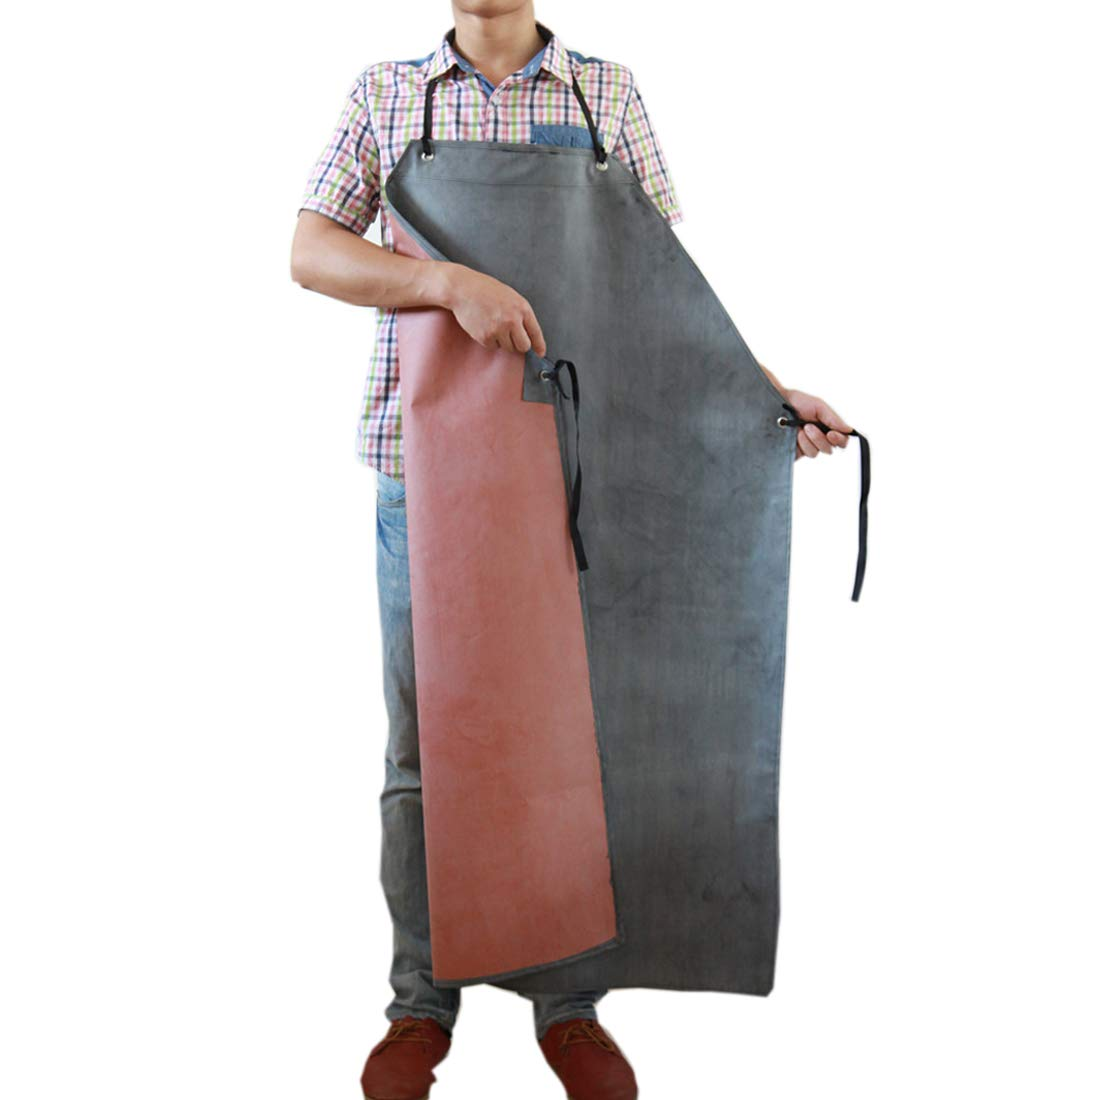 Men's Rubber Waterproof Work Apron Extra Long Oil Resistant for Dishwashing Factory Slaughterhouse